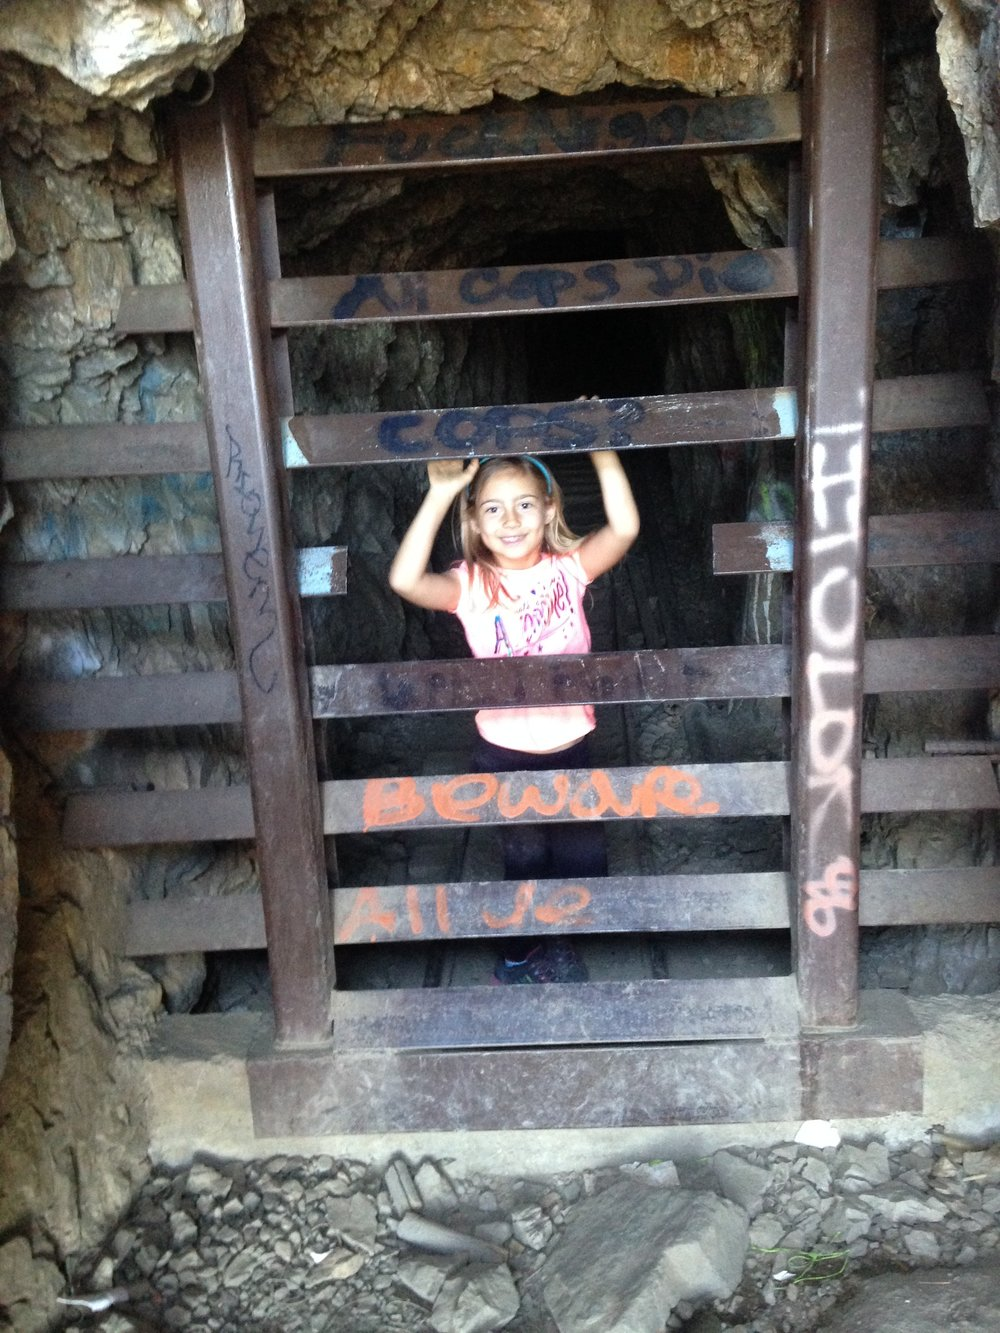 After 2 and a half miles of hiking we finally made it up to the mine! Ella was really the only one that could easily get inside, but a few minutes after I took this photo, a group of friends emerged from the mine saying they went back about 500-1000 feet before it started to split off into several other tunnels.